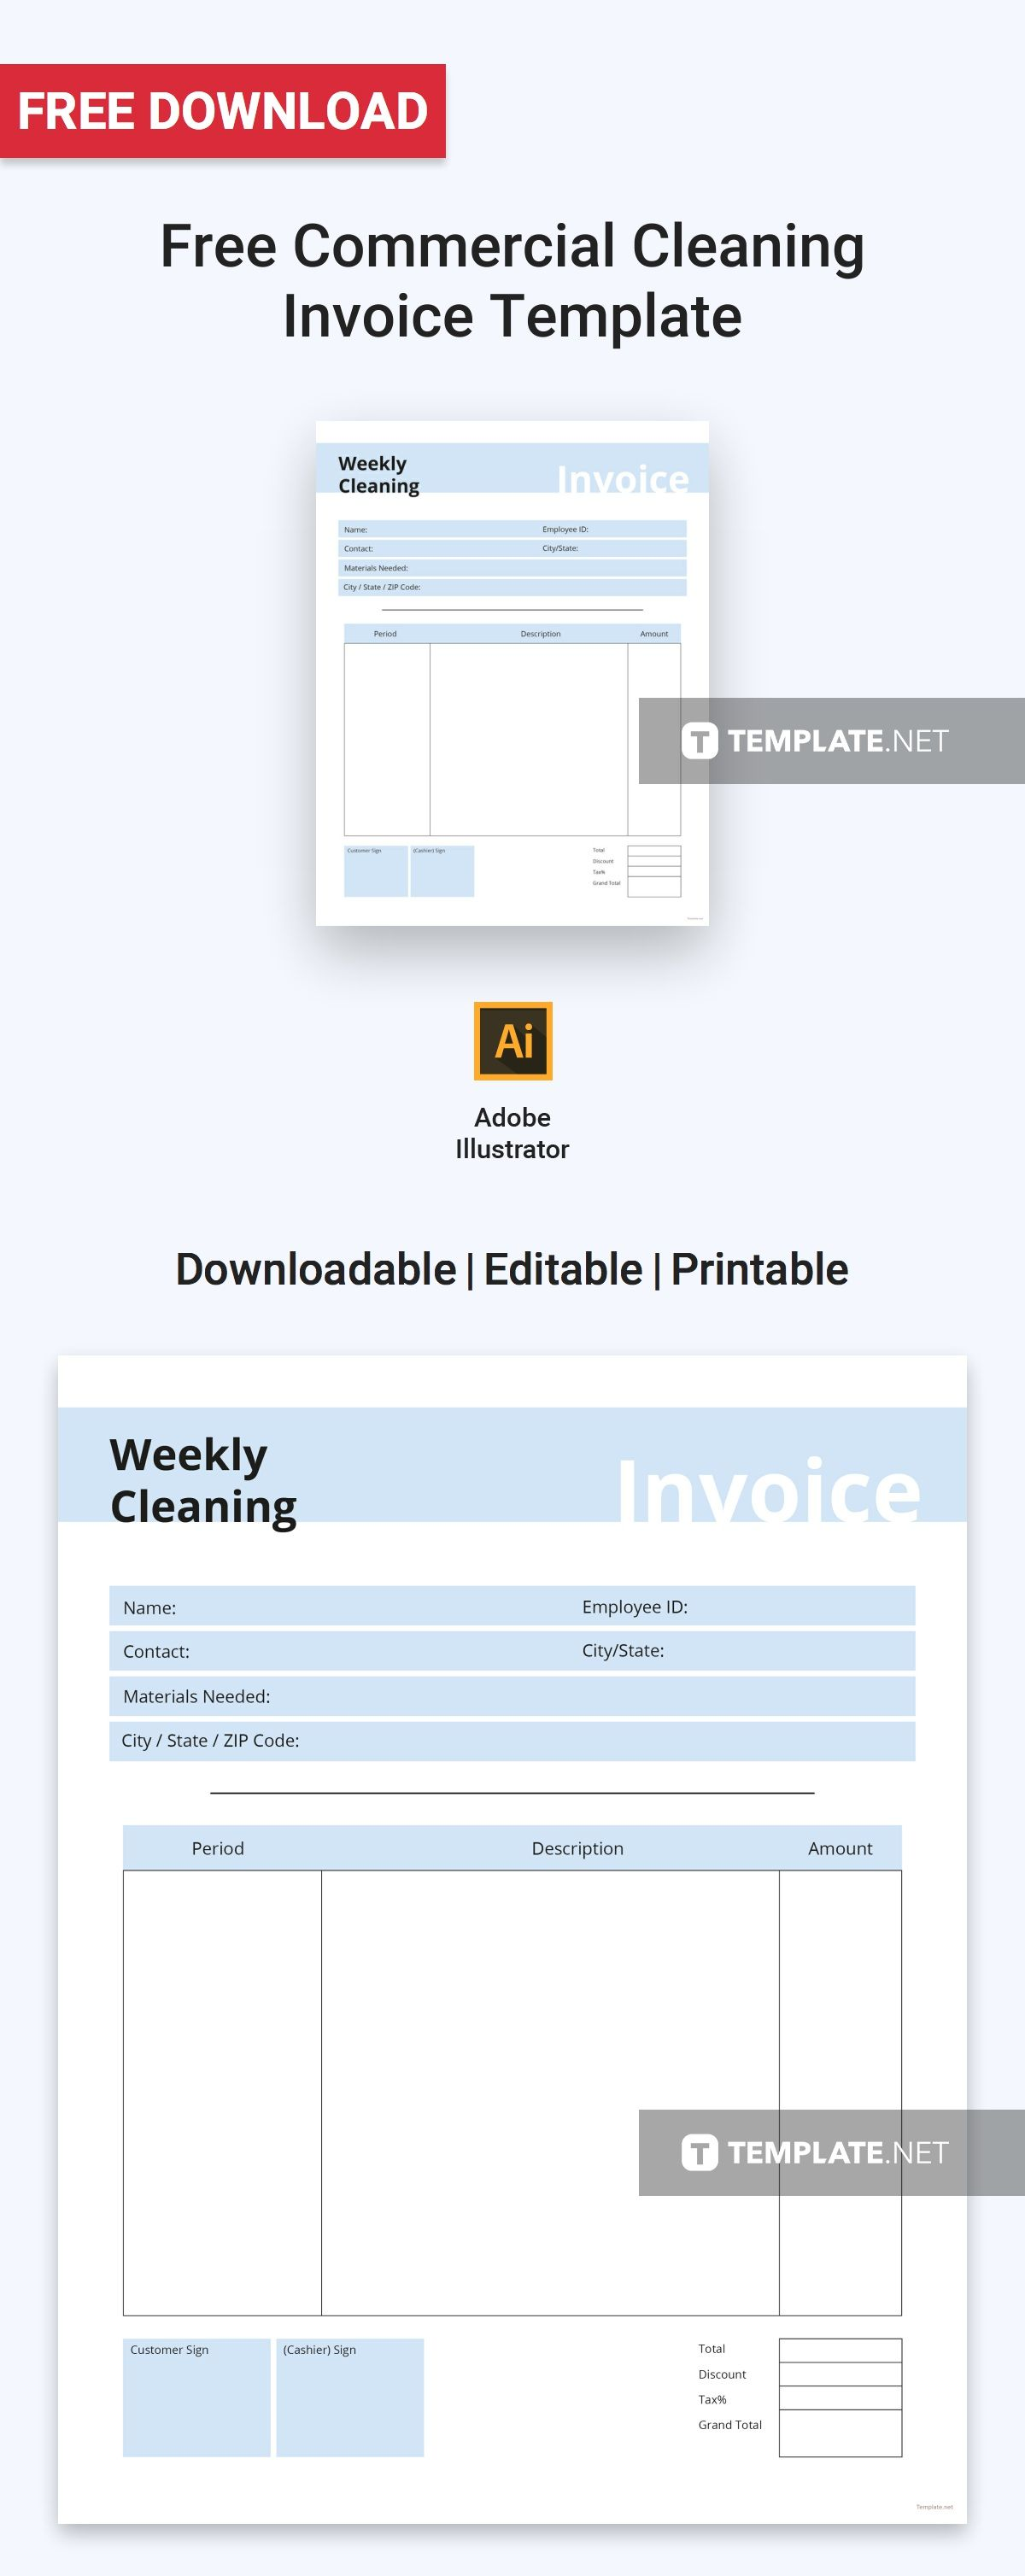 Free Download Invoice Template Free Commercial Cleaning Invoice  Commercial Template And Free